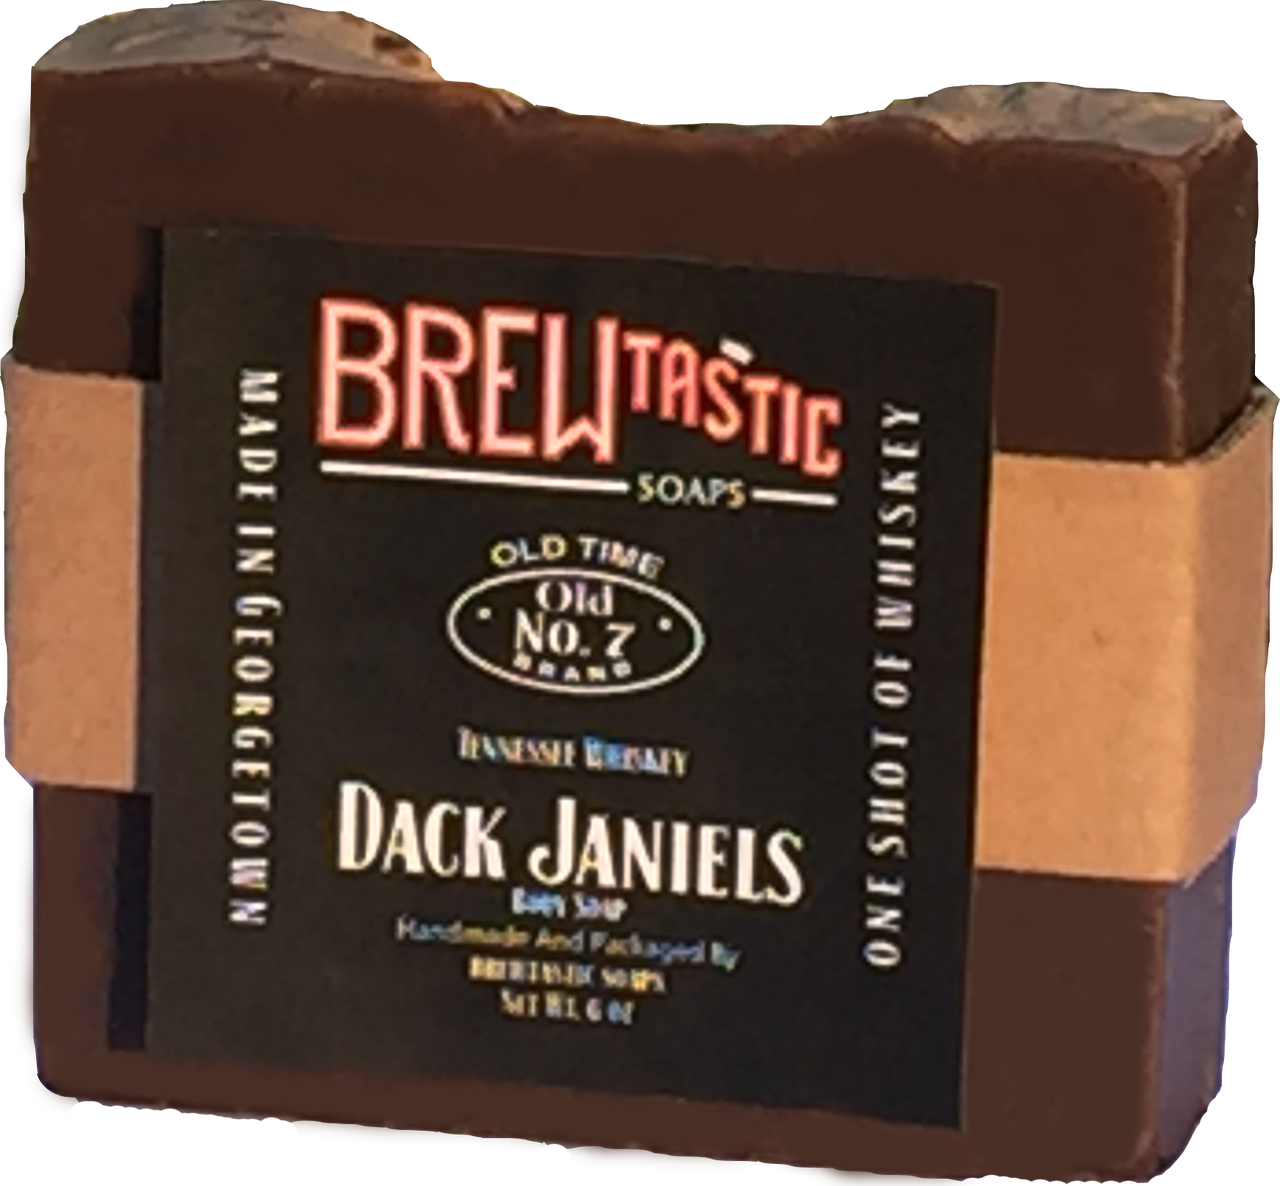 Dack janiels whiskey soap. Transparent soaps old banner freeuse library